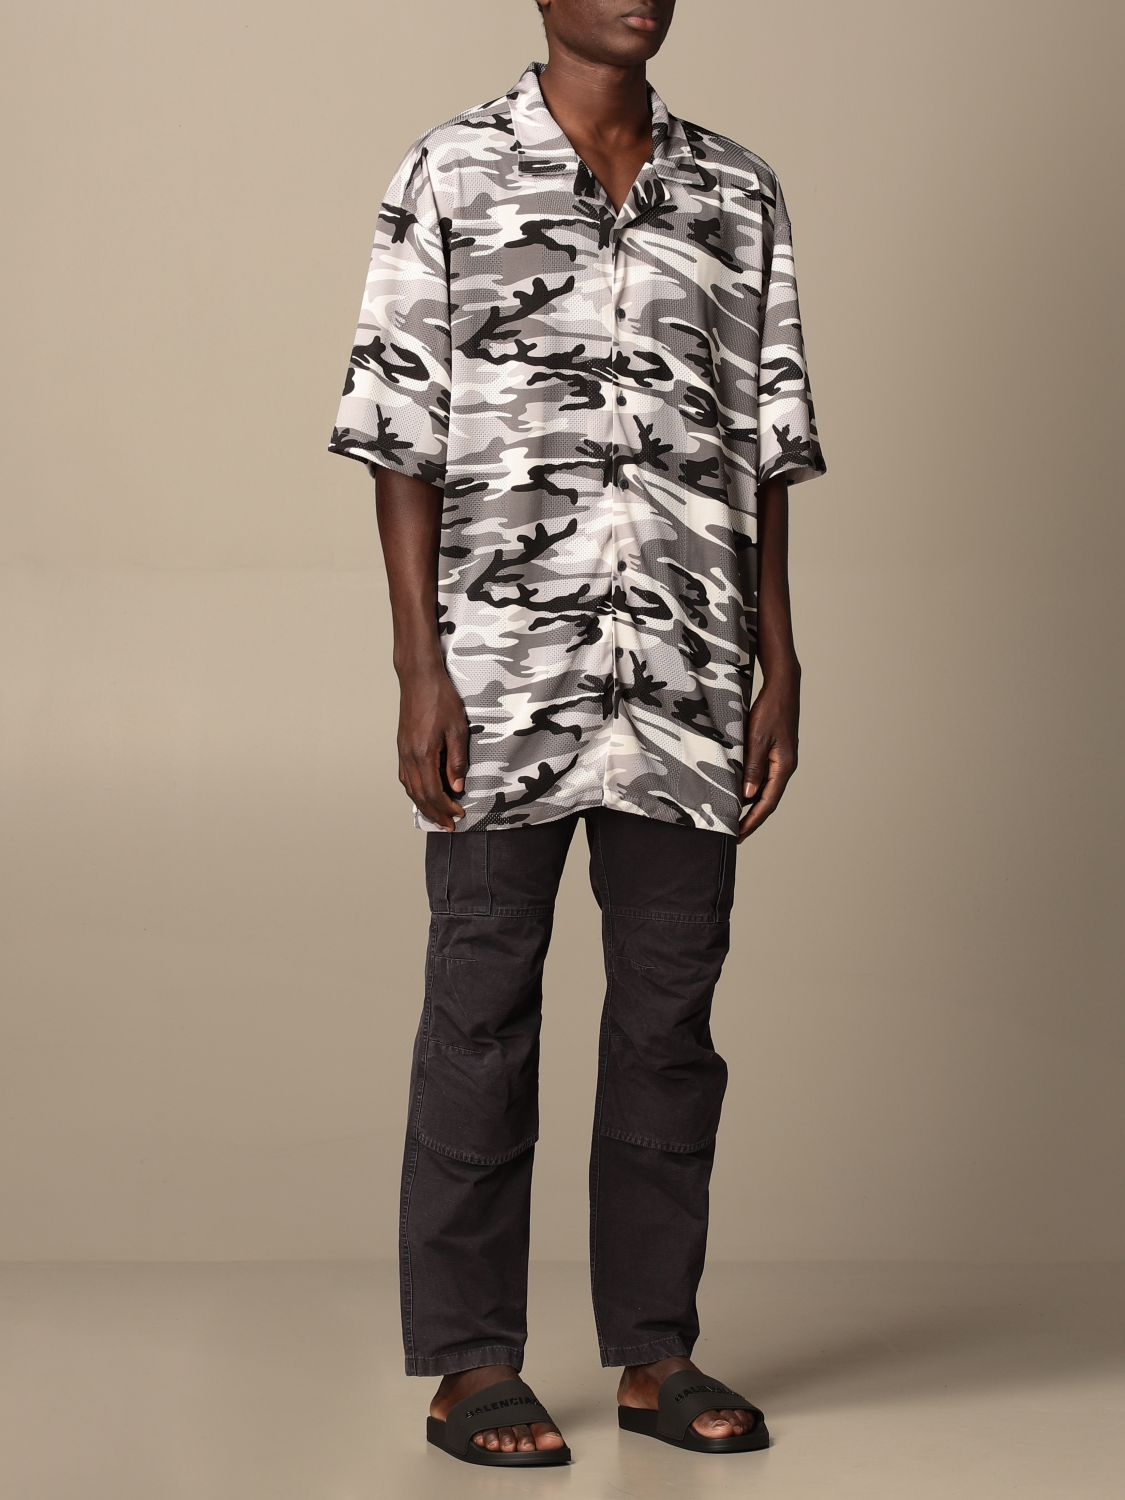 Shirt Balenciaga: Over Balenciaga shirt with camouflage pattern grey 2